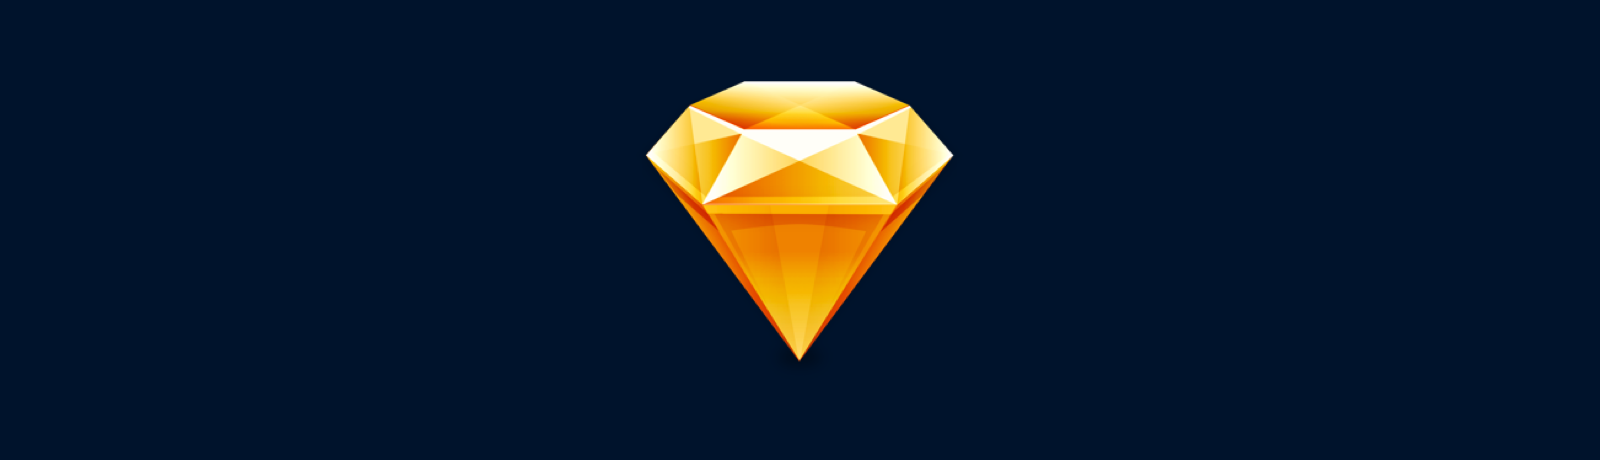 The beginners guide to writing sketch plugins part 1 getting started fandeluxe Image collections